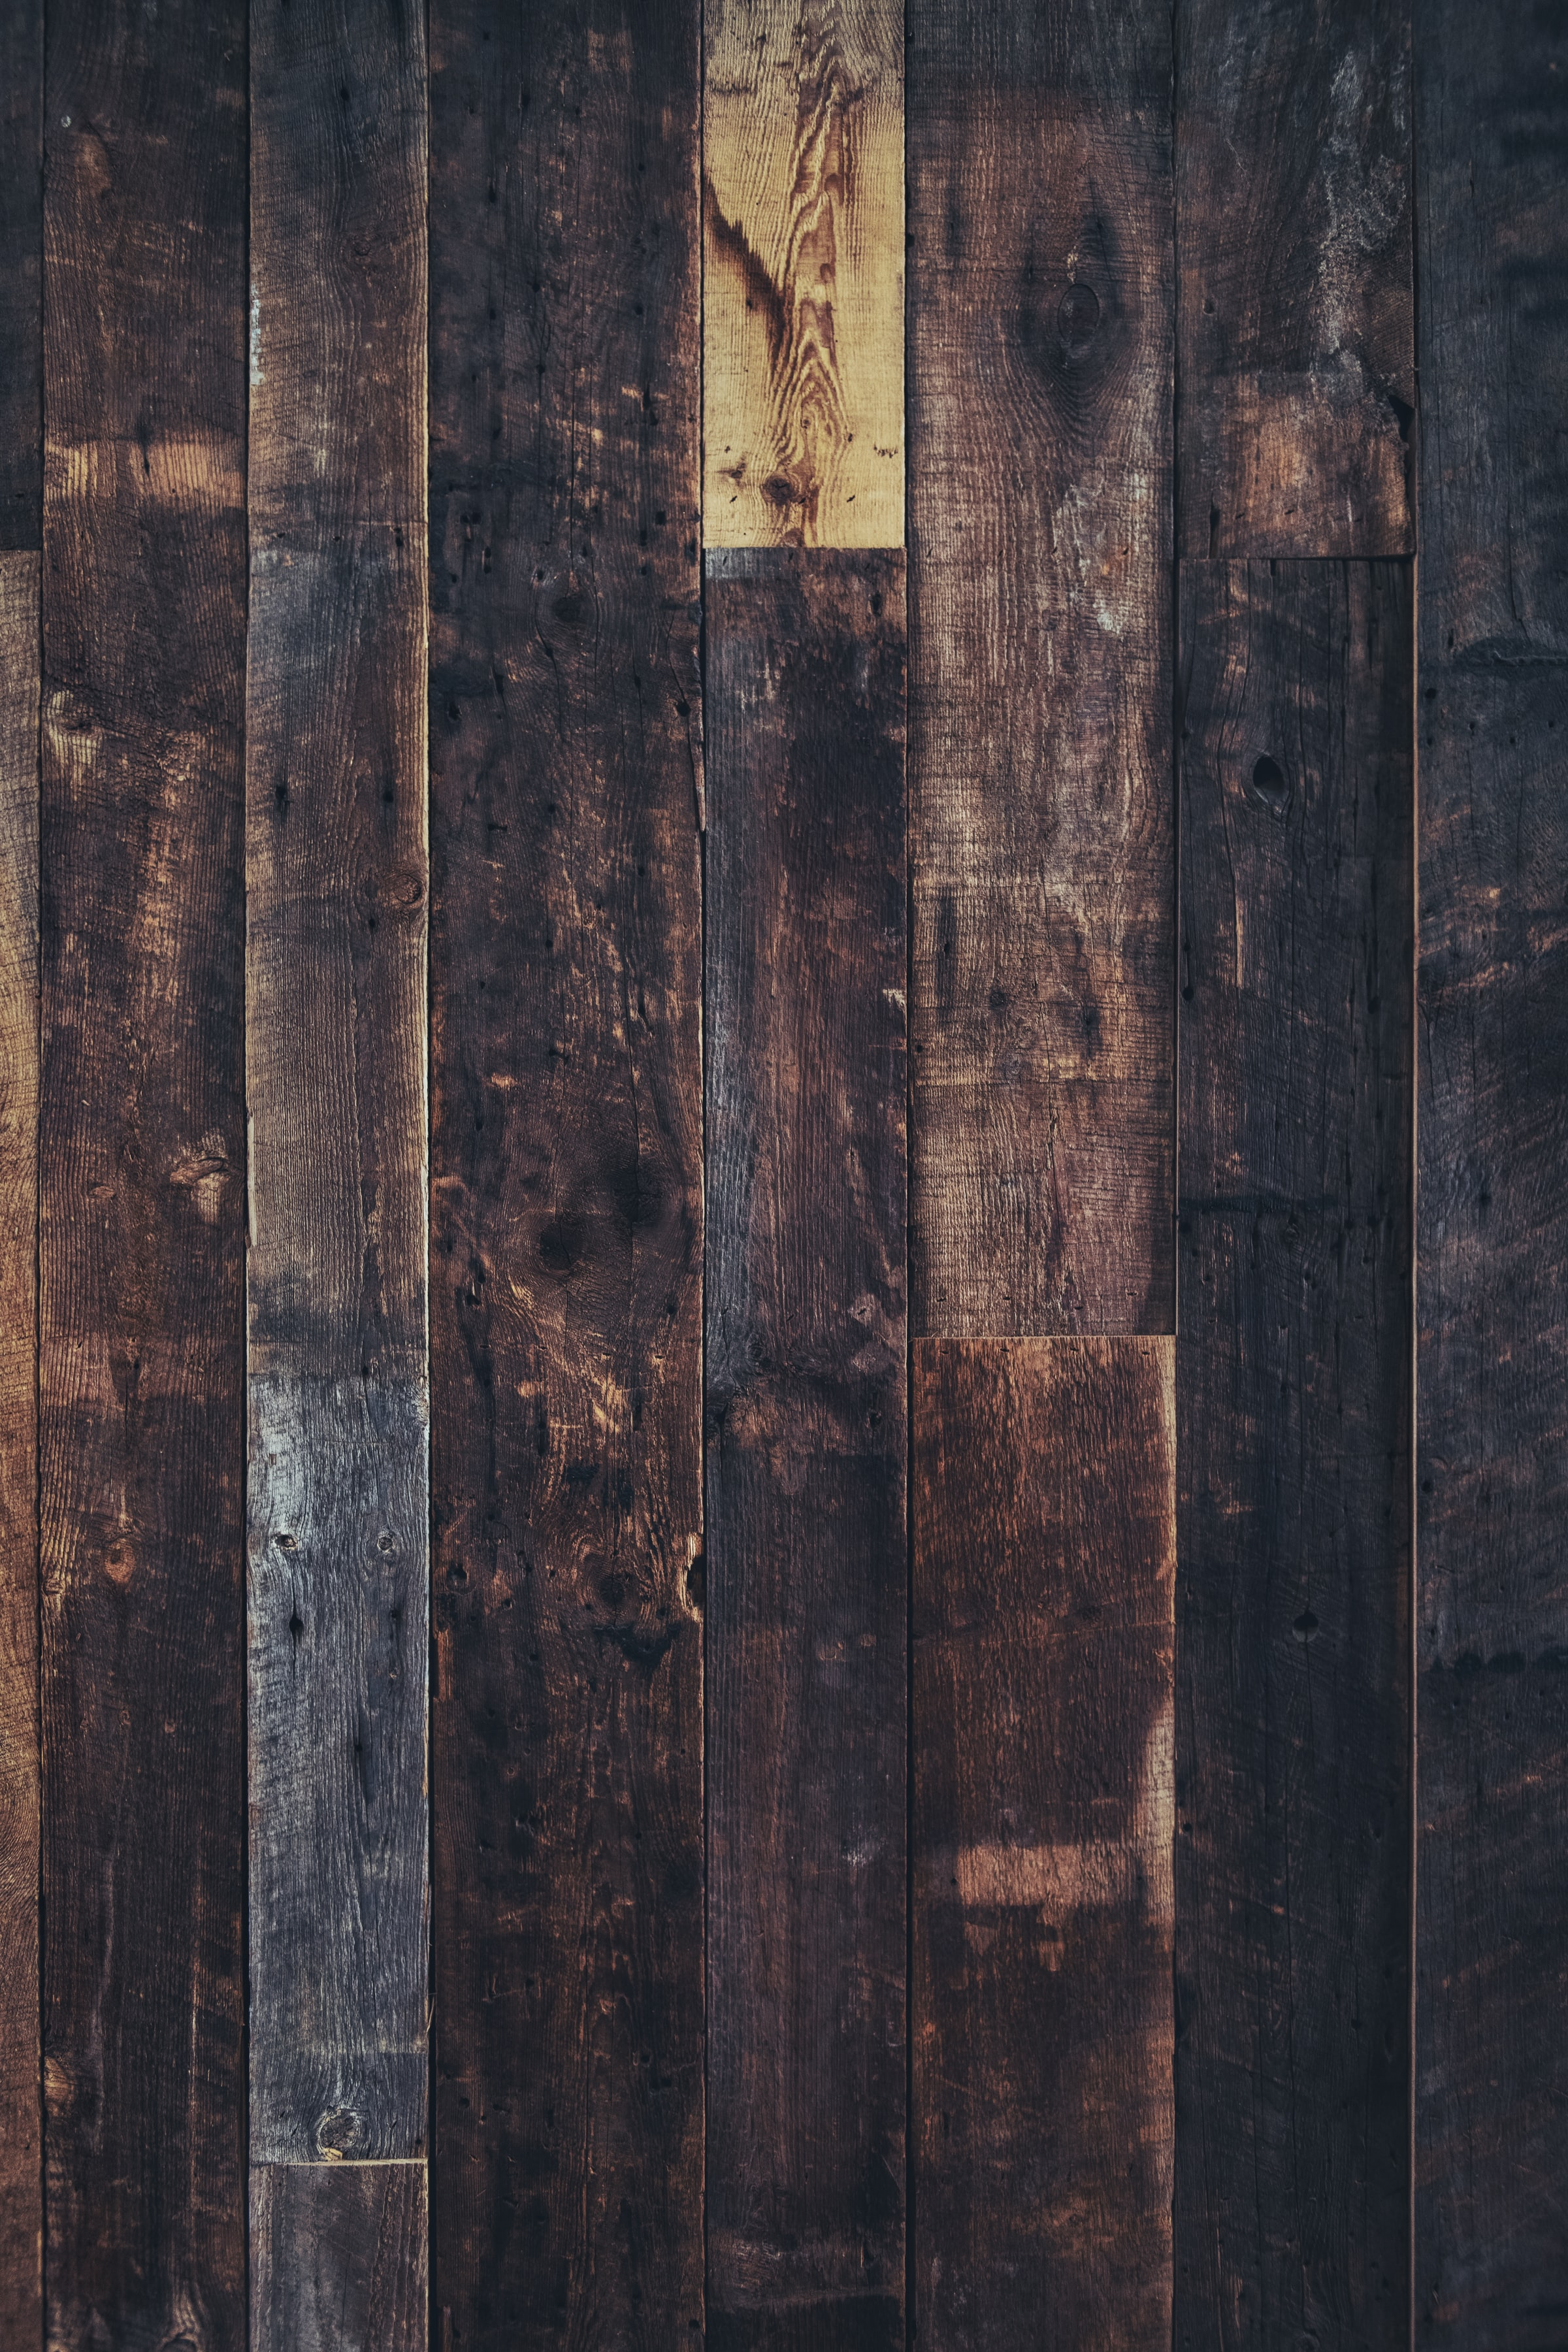 122191 download wallpaper Textures, Texture, Wood, Tree, Planks, Board, Surface screensavers and pictures for free